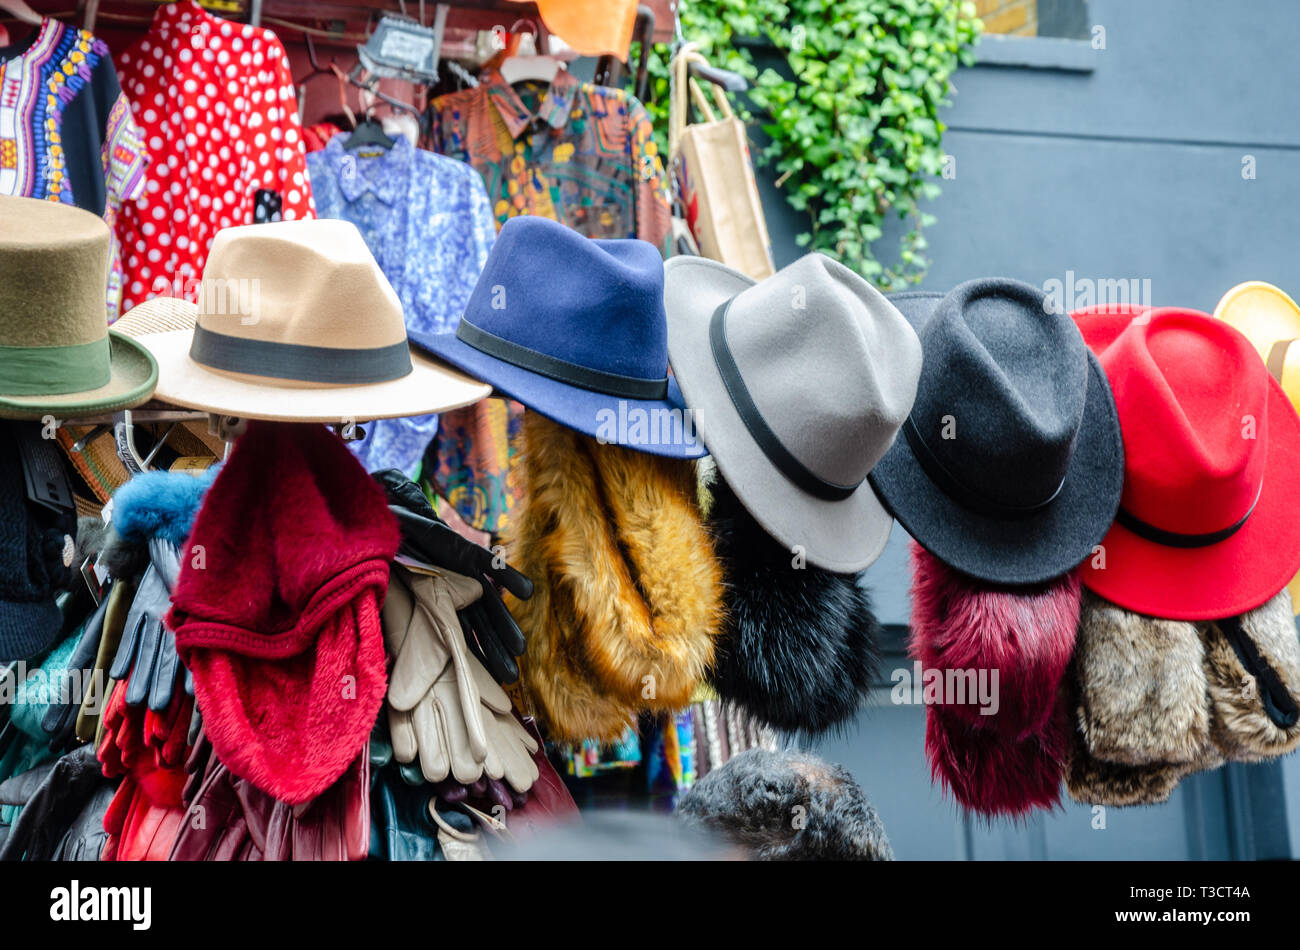 b27fca02e214ae Trilby hats hung up on display at a market stall in Portobello Road Market  in London